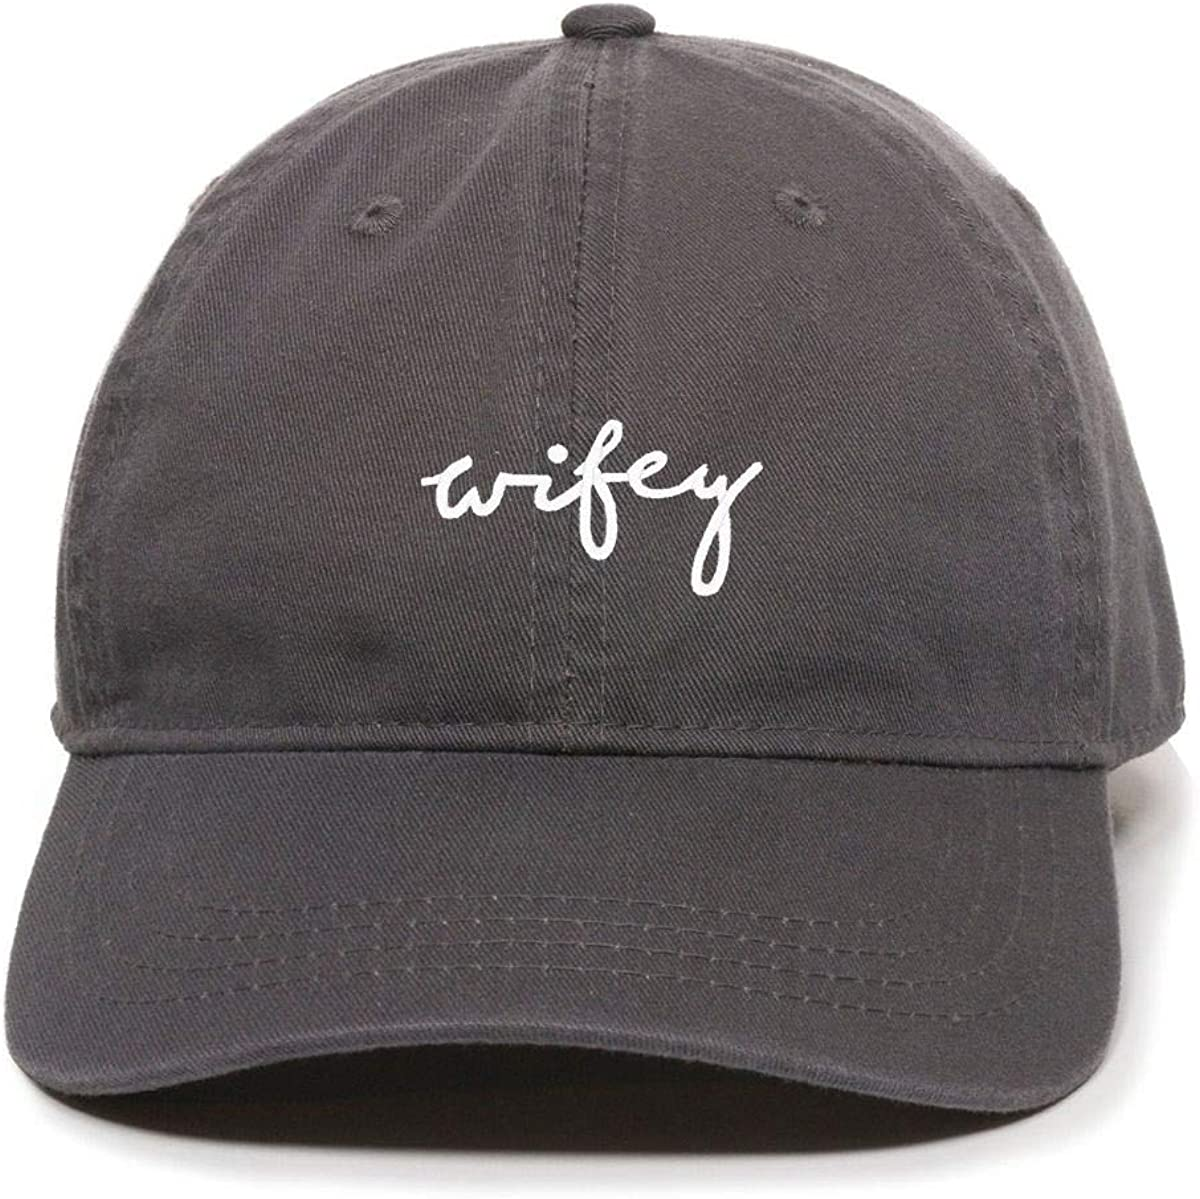 DSGN By DNA Wifey Baseball Bombing new work Adjustable Dad Cotton Embroidered Cap New popularity